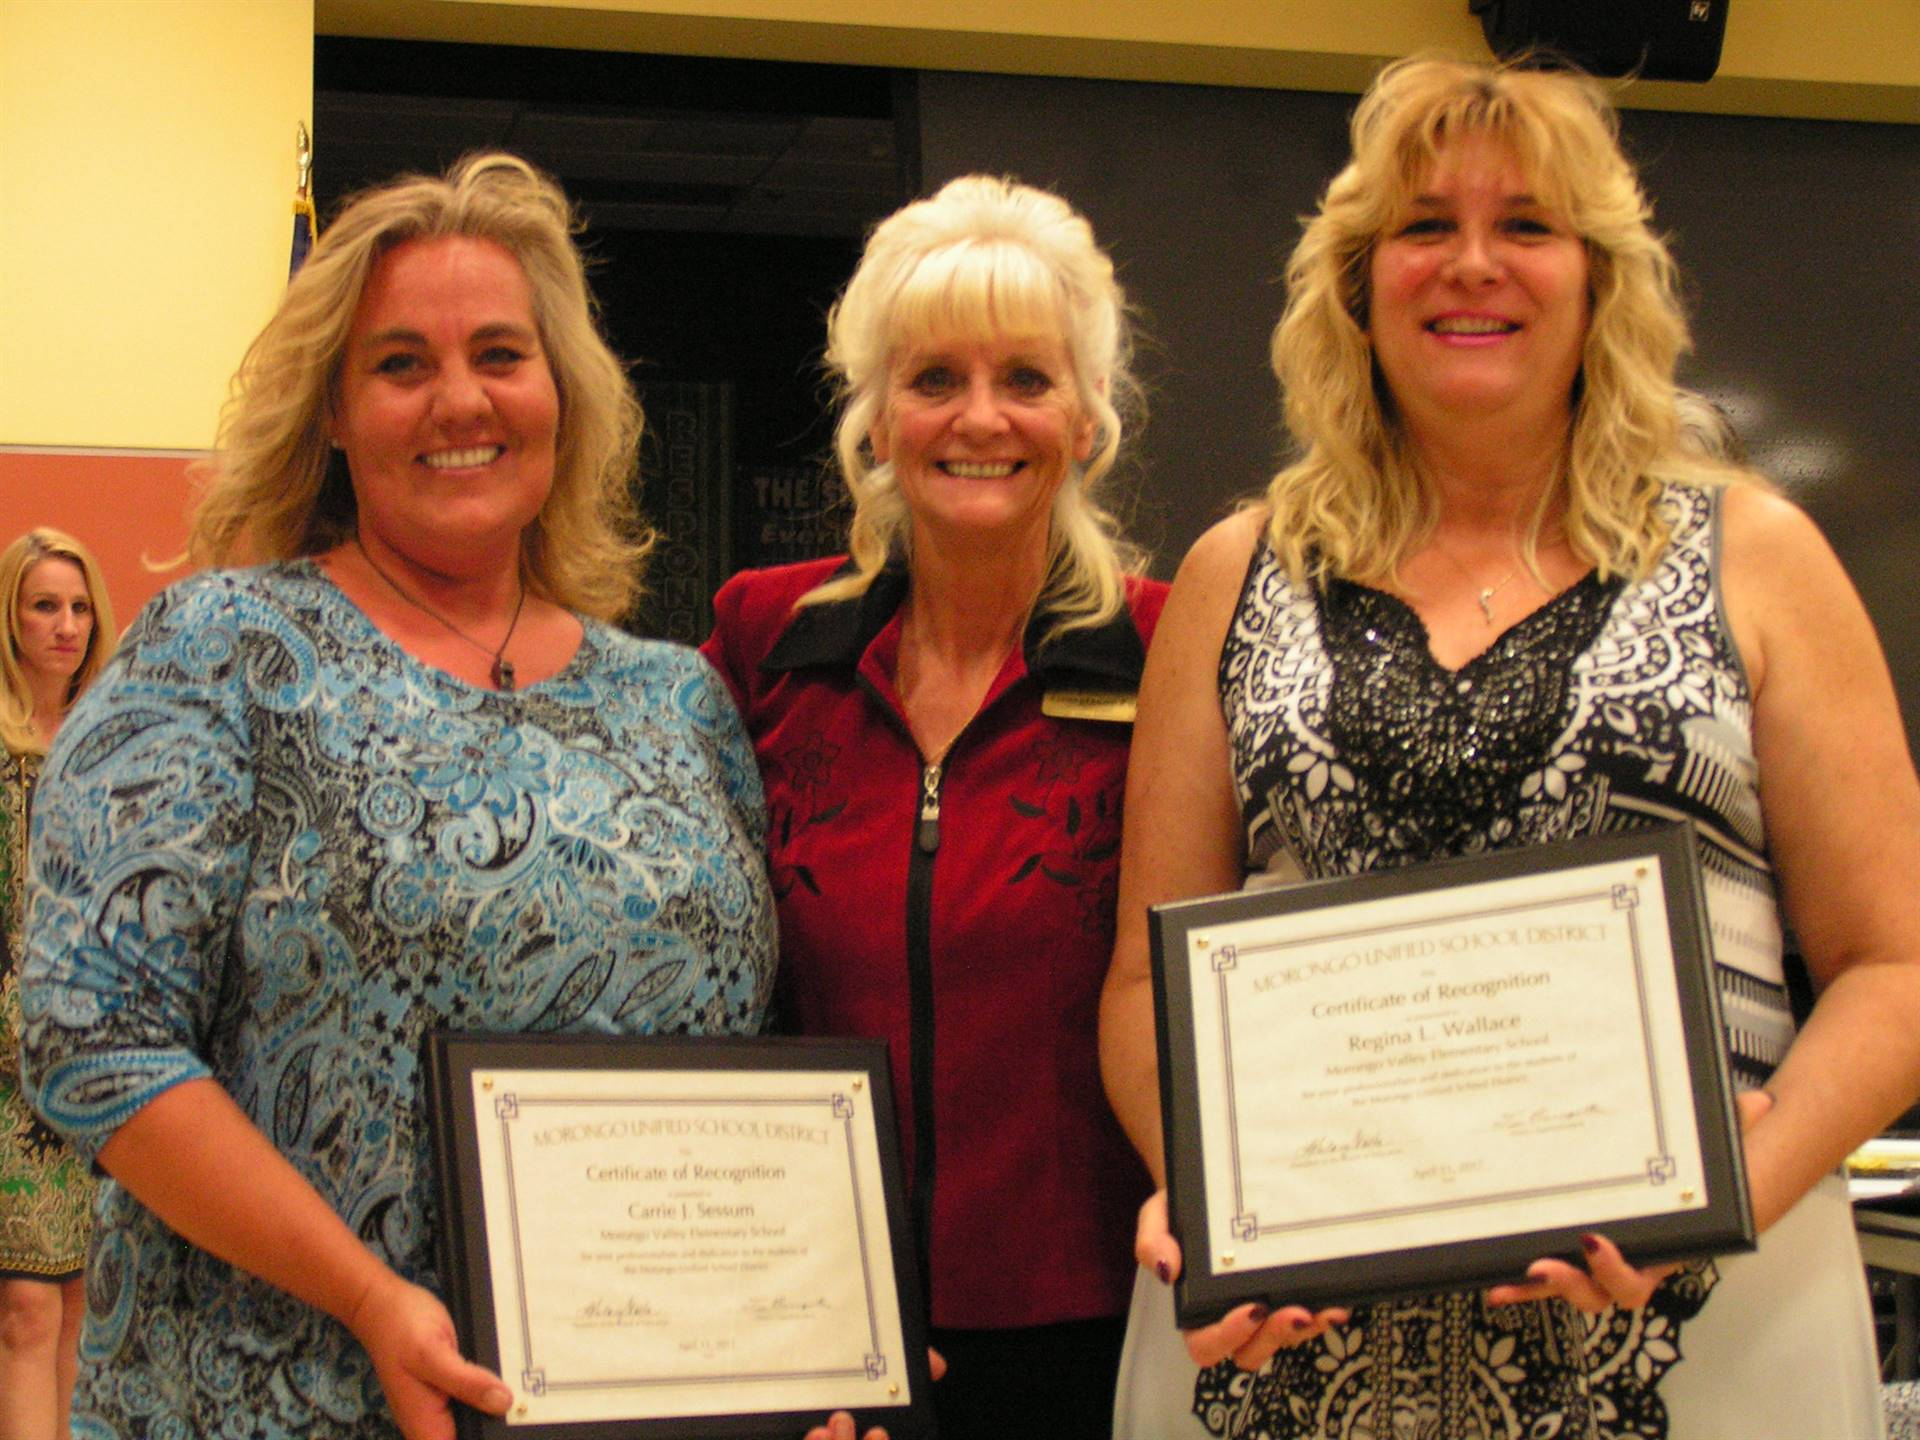 MORONGO VALLEY ELEMENTARY: CARRIE SESSUM, GEORGIANNE POPE, REGINA WALLACE